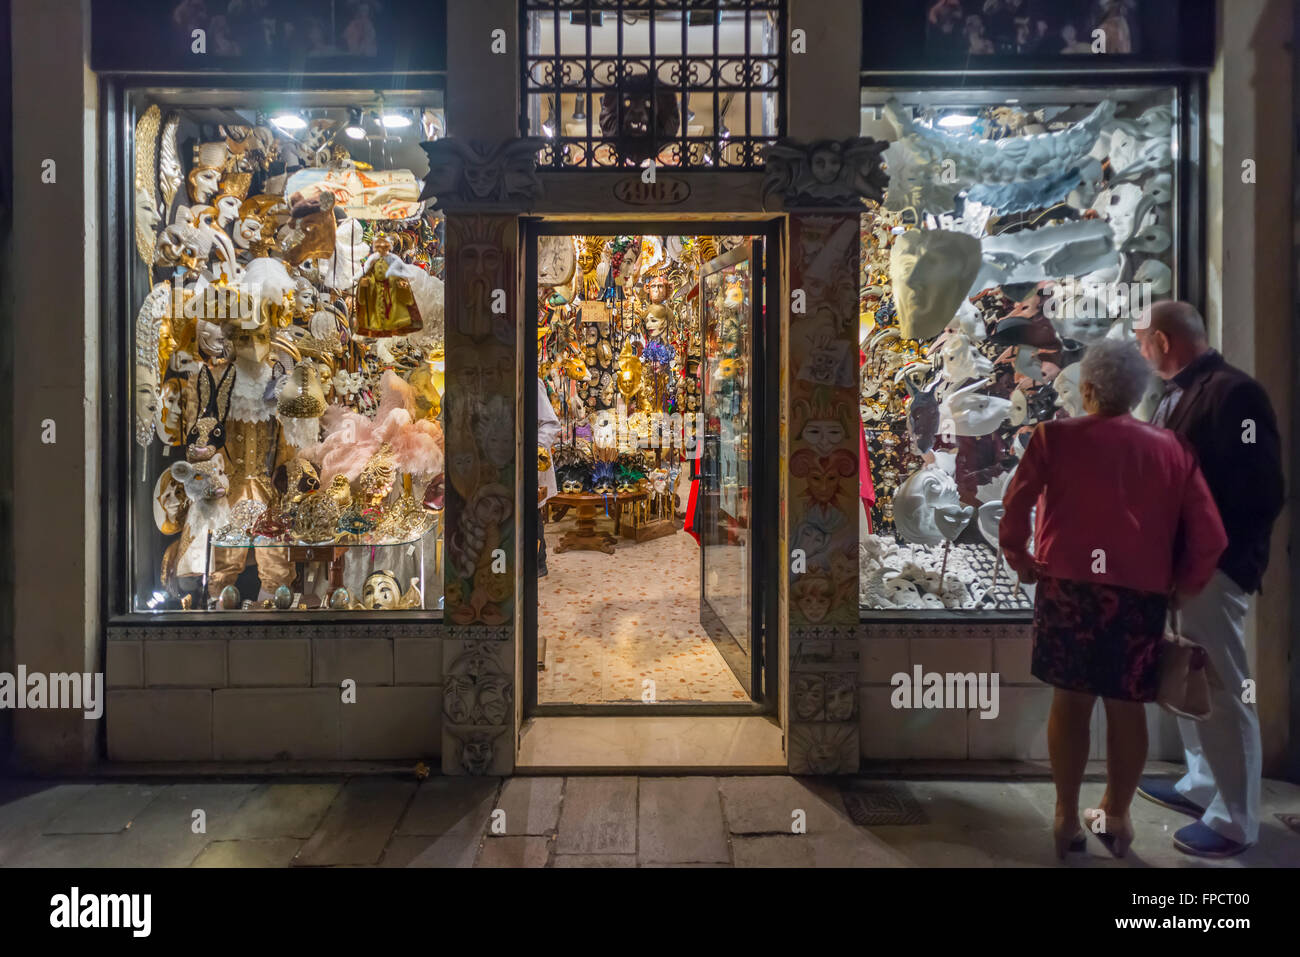 9a8c816af09d8 Window Store Illuminated Photos   Window Store Illuminated Images ...